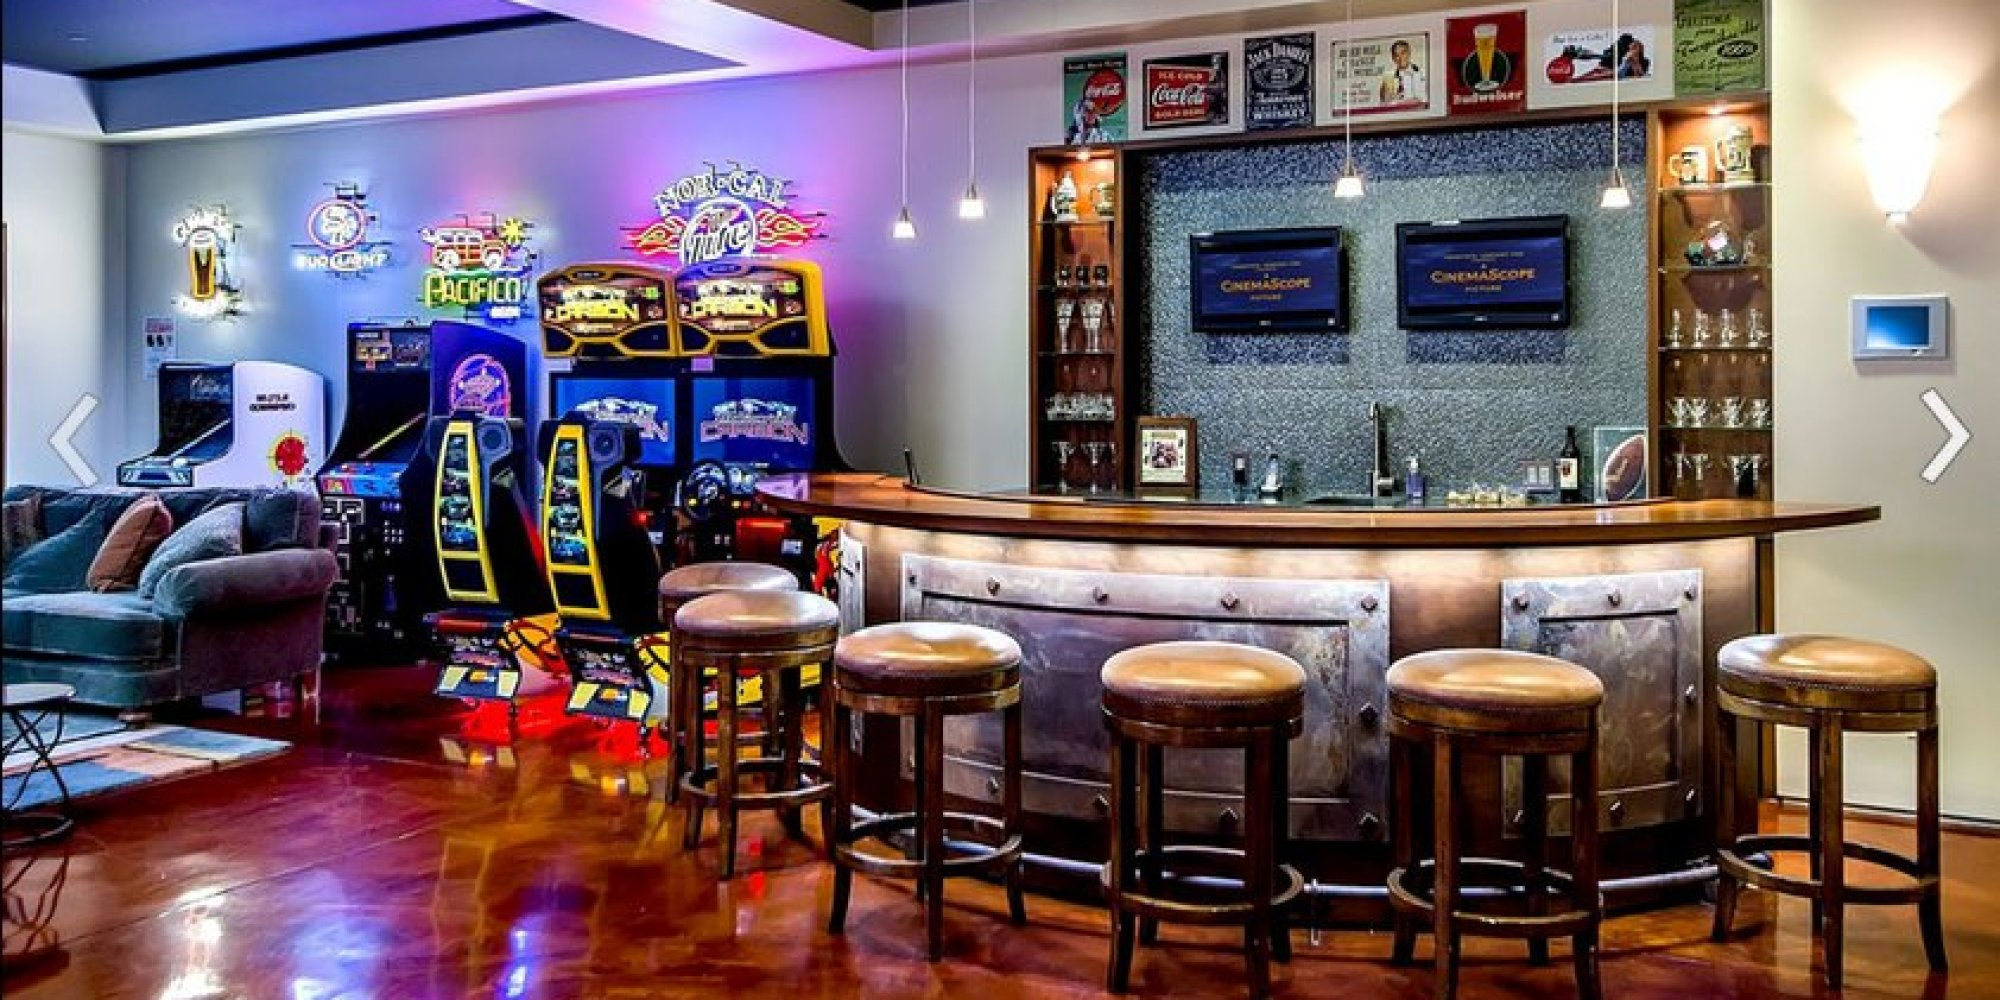 Awesome Arcade Room With Full Bar Is The Room You 39 D Never Want To